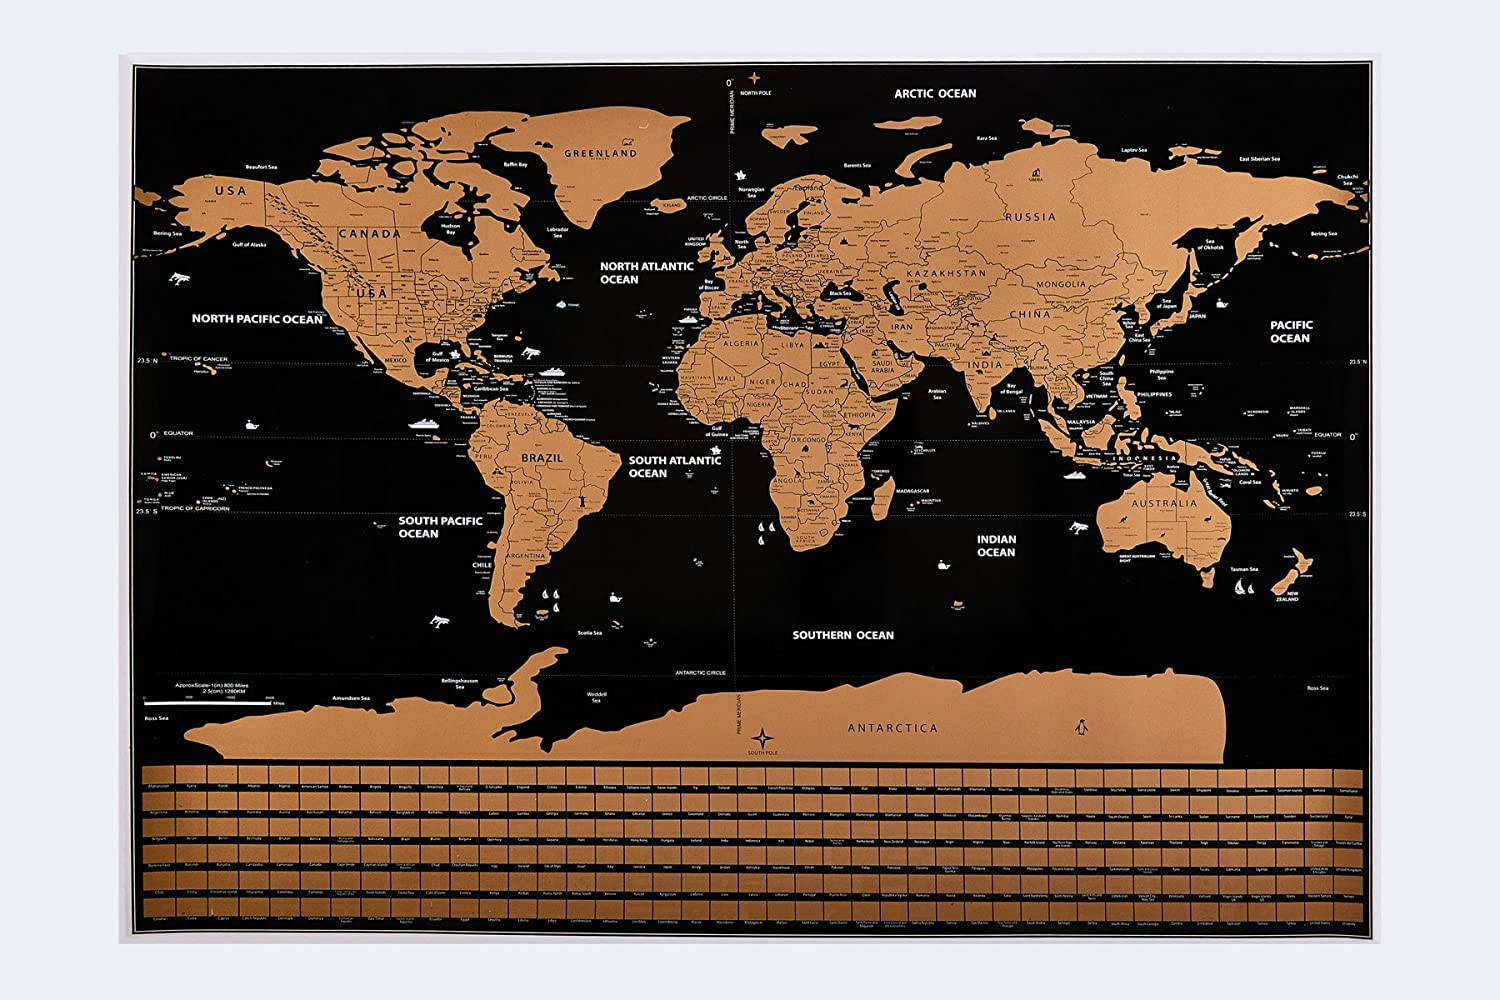 Amazon bosa world world scratch off map travelers map of amazon bosa world world scratch off map travelers map of all united states and countries with scratch pen brush bag fun way to track gumiabroncs Image collections